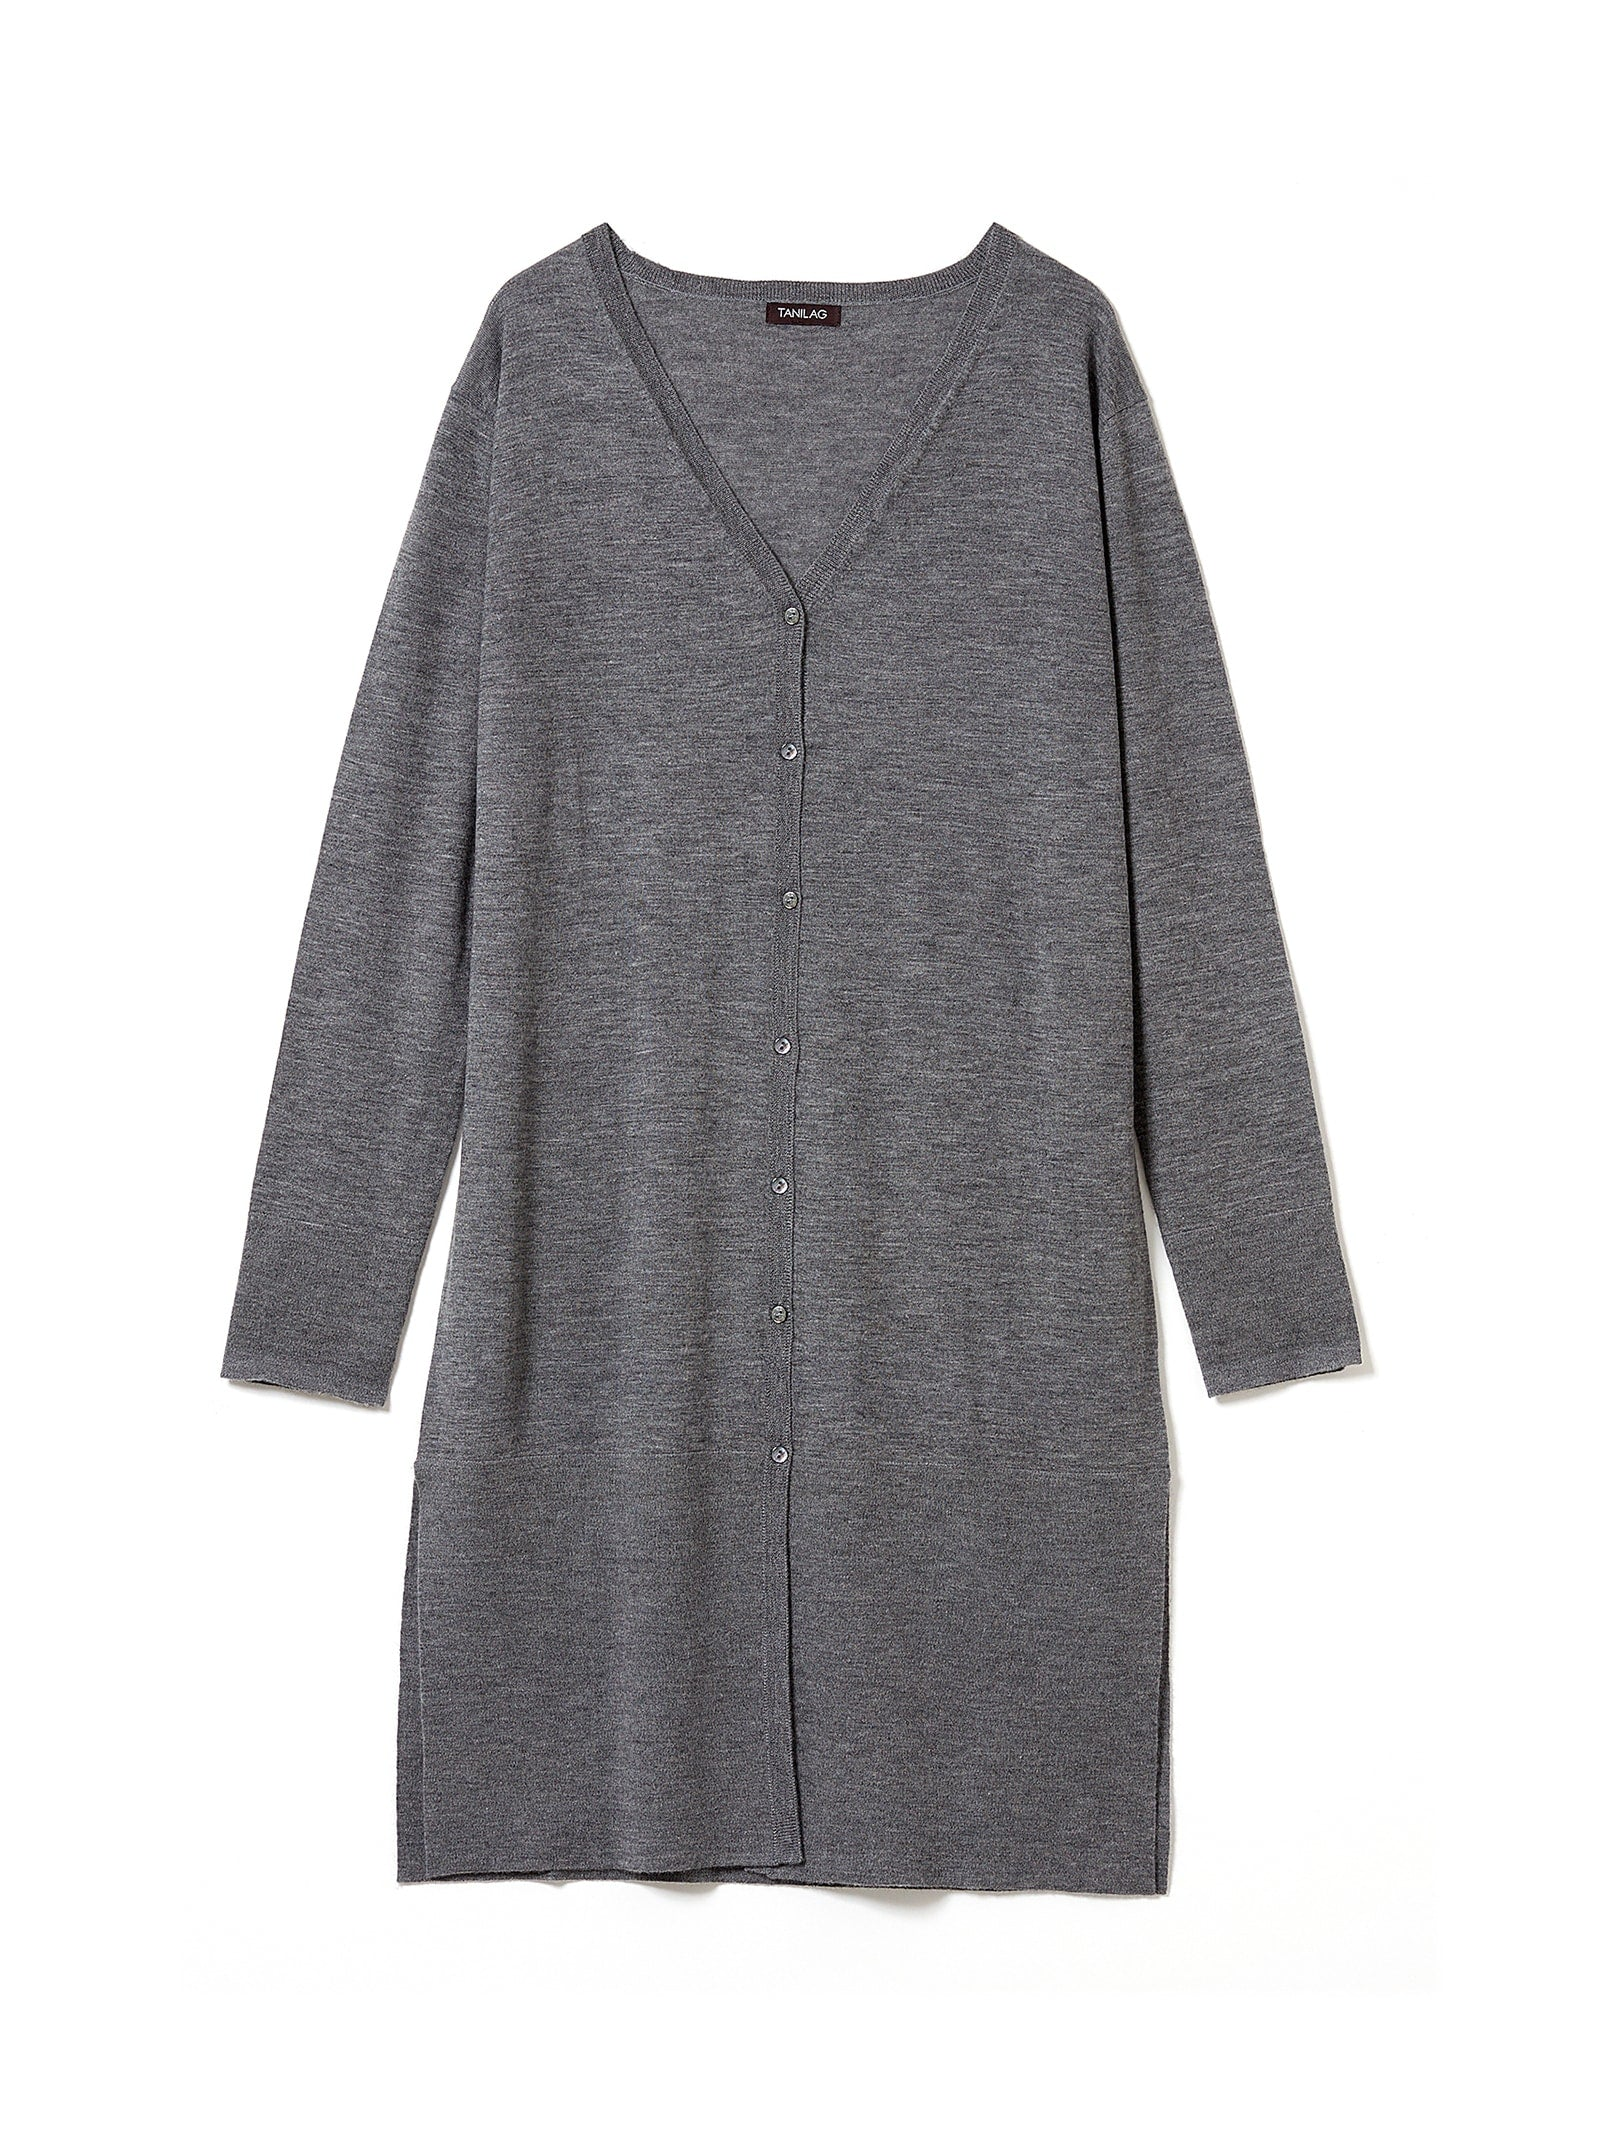 FINE GAUGE CASHMERE V-LONG CARDIGAN